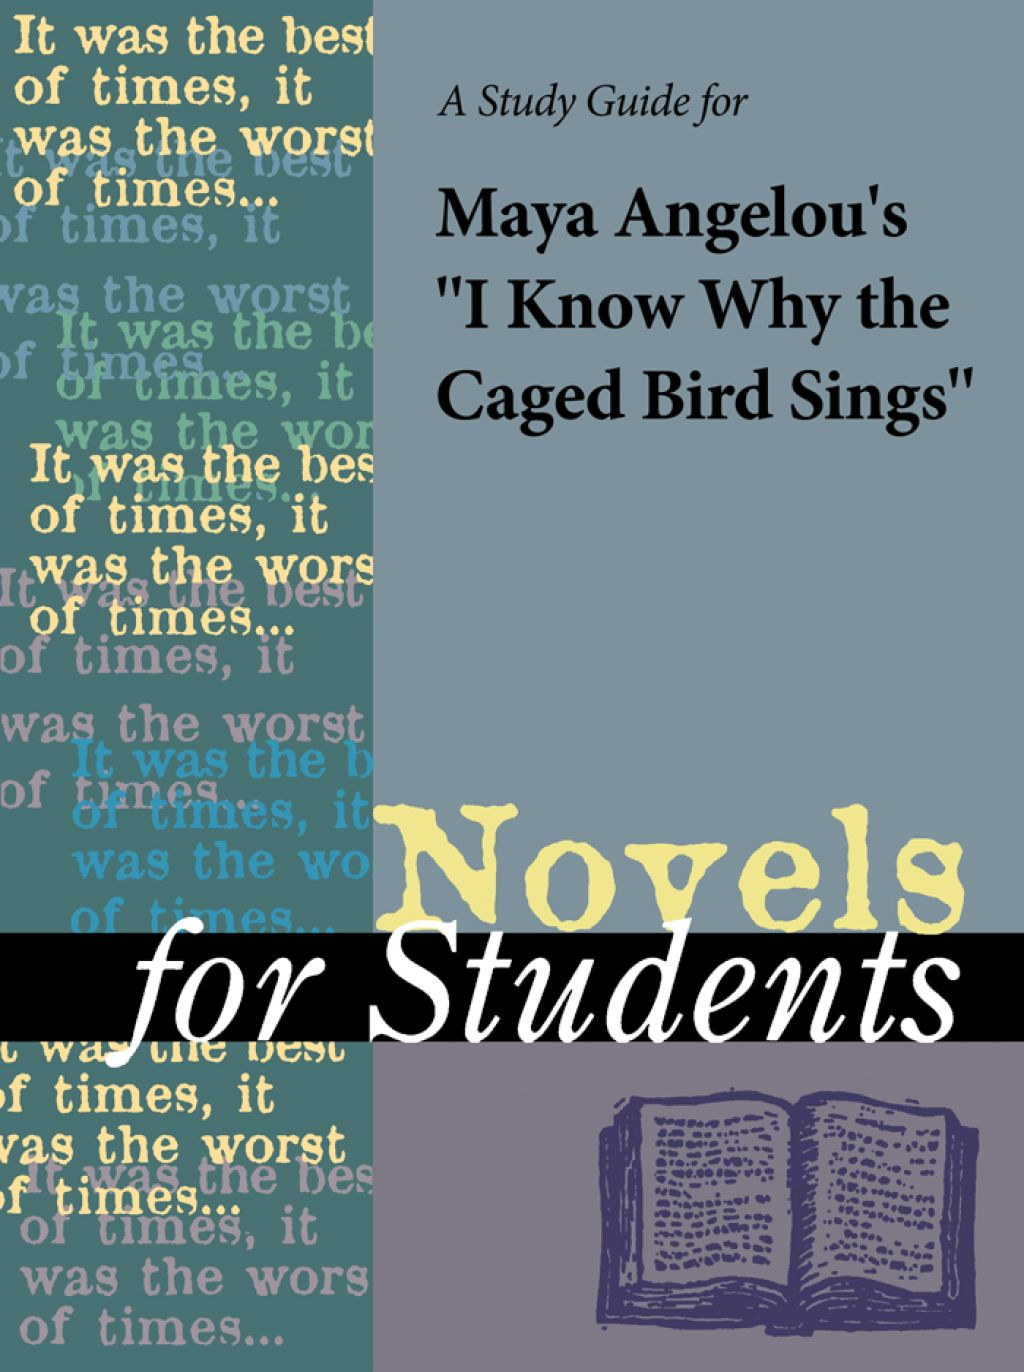 A Study Guide for Maya Angelou's I Know Why the Caged Bird